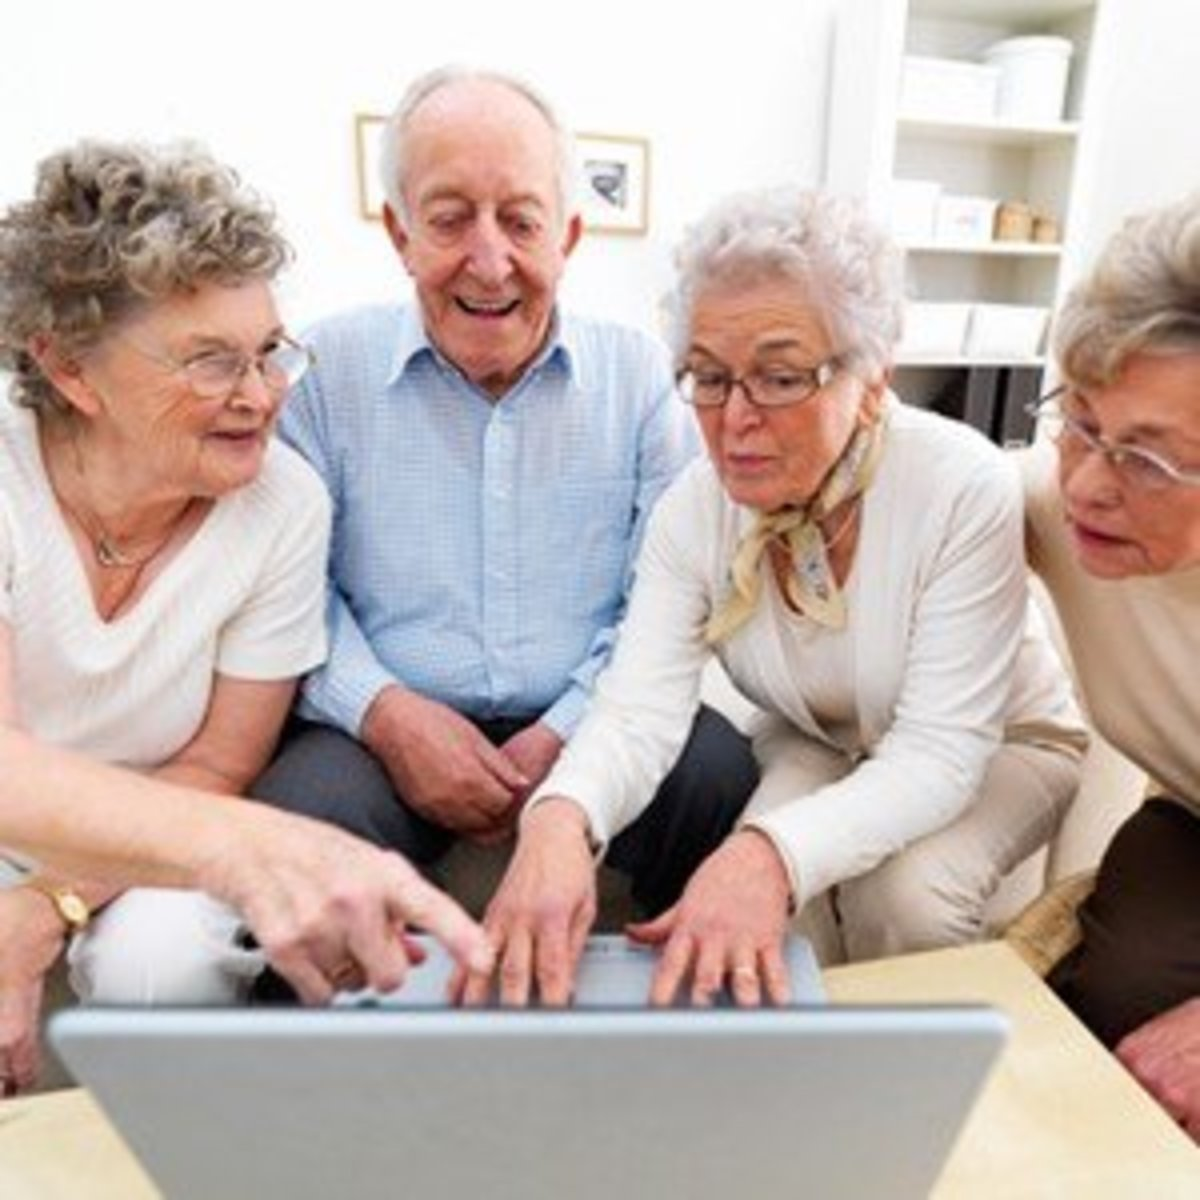 Embracing technology will help Baby Boomers age in place